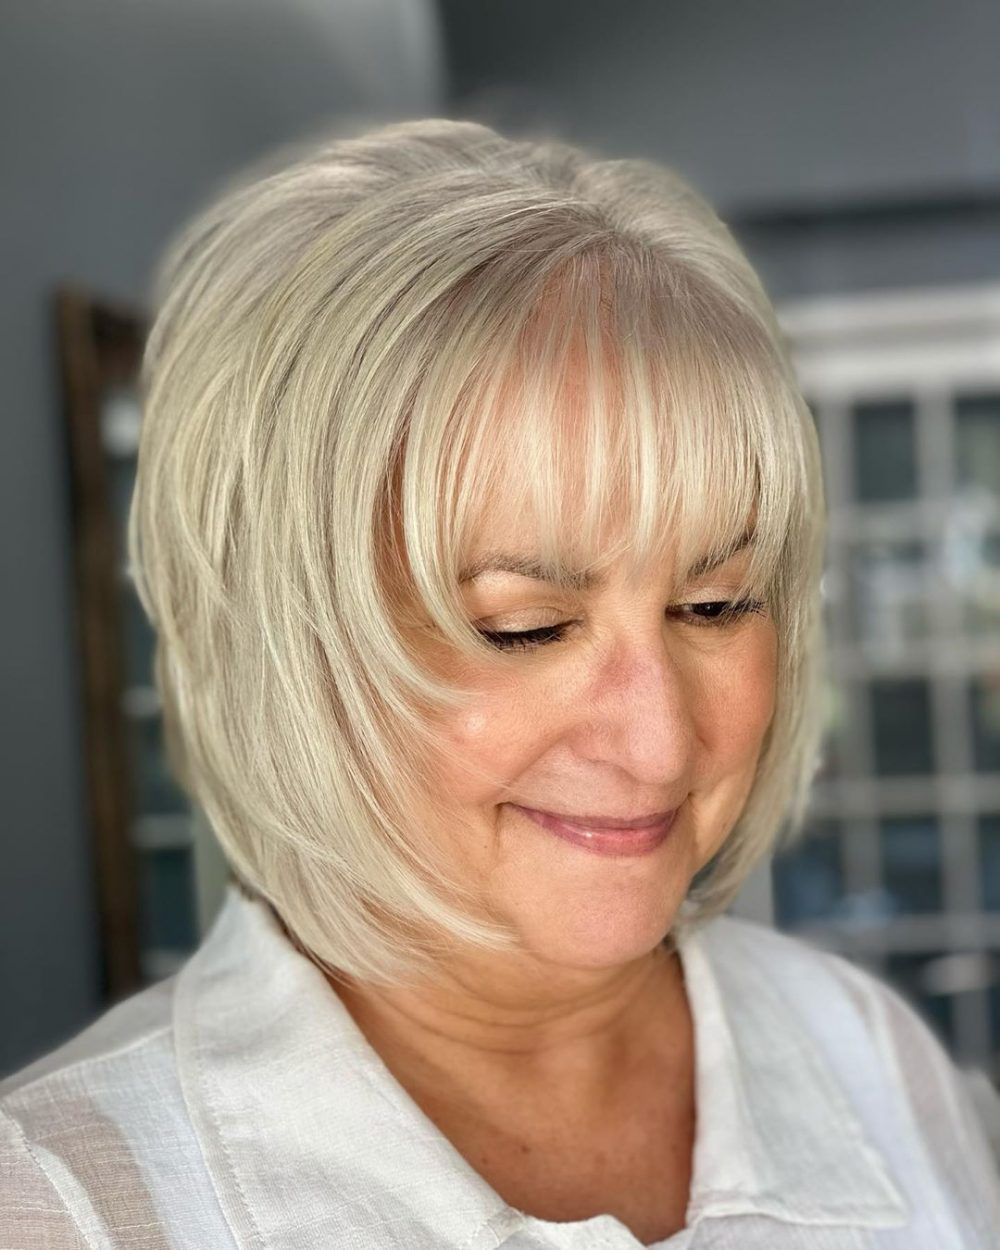 18 Modern Haircuts for Women Over 70 to Look Young